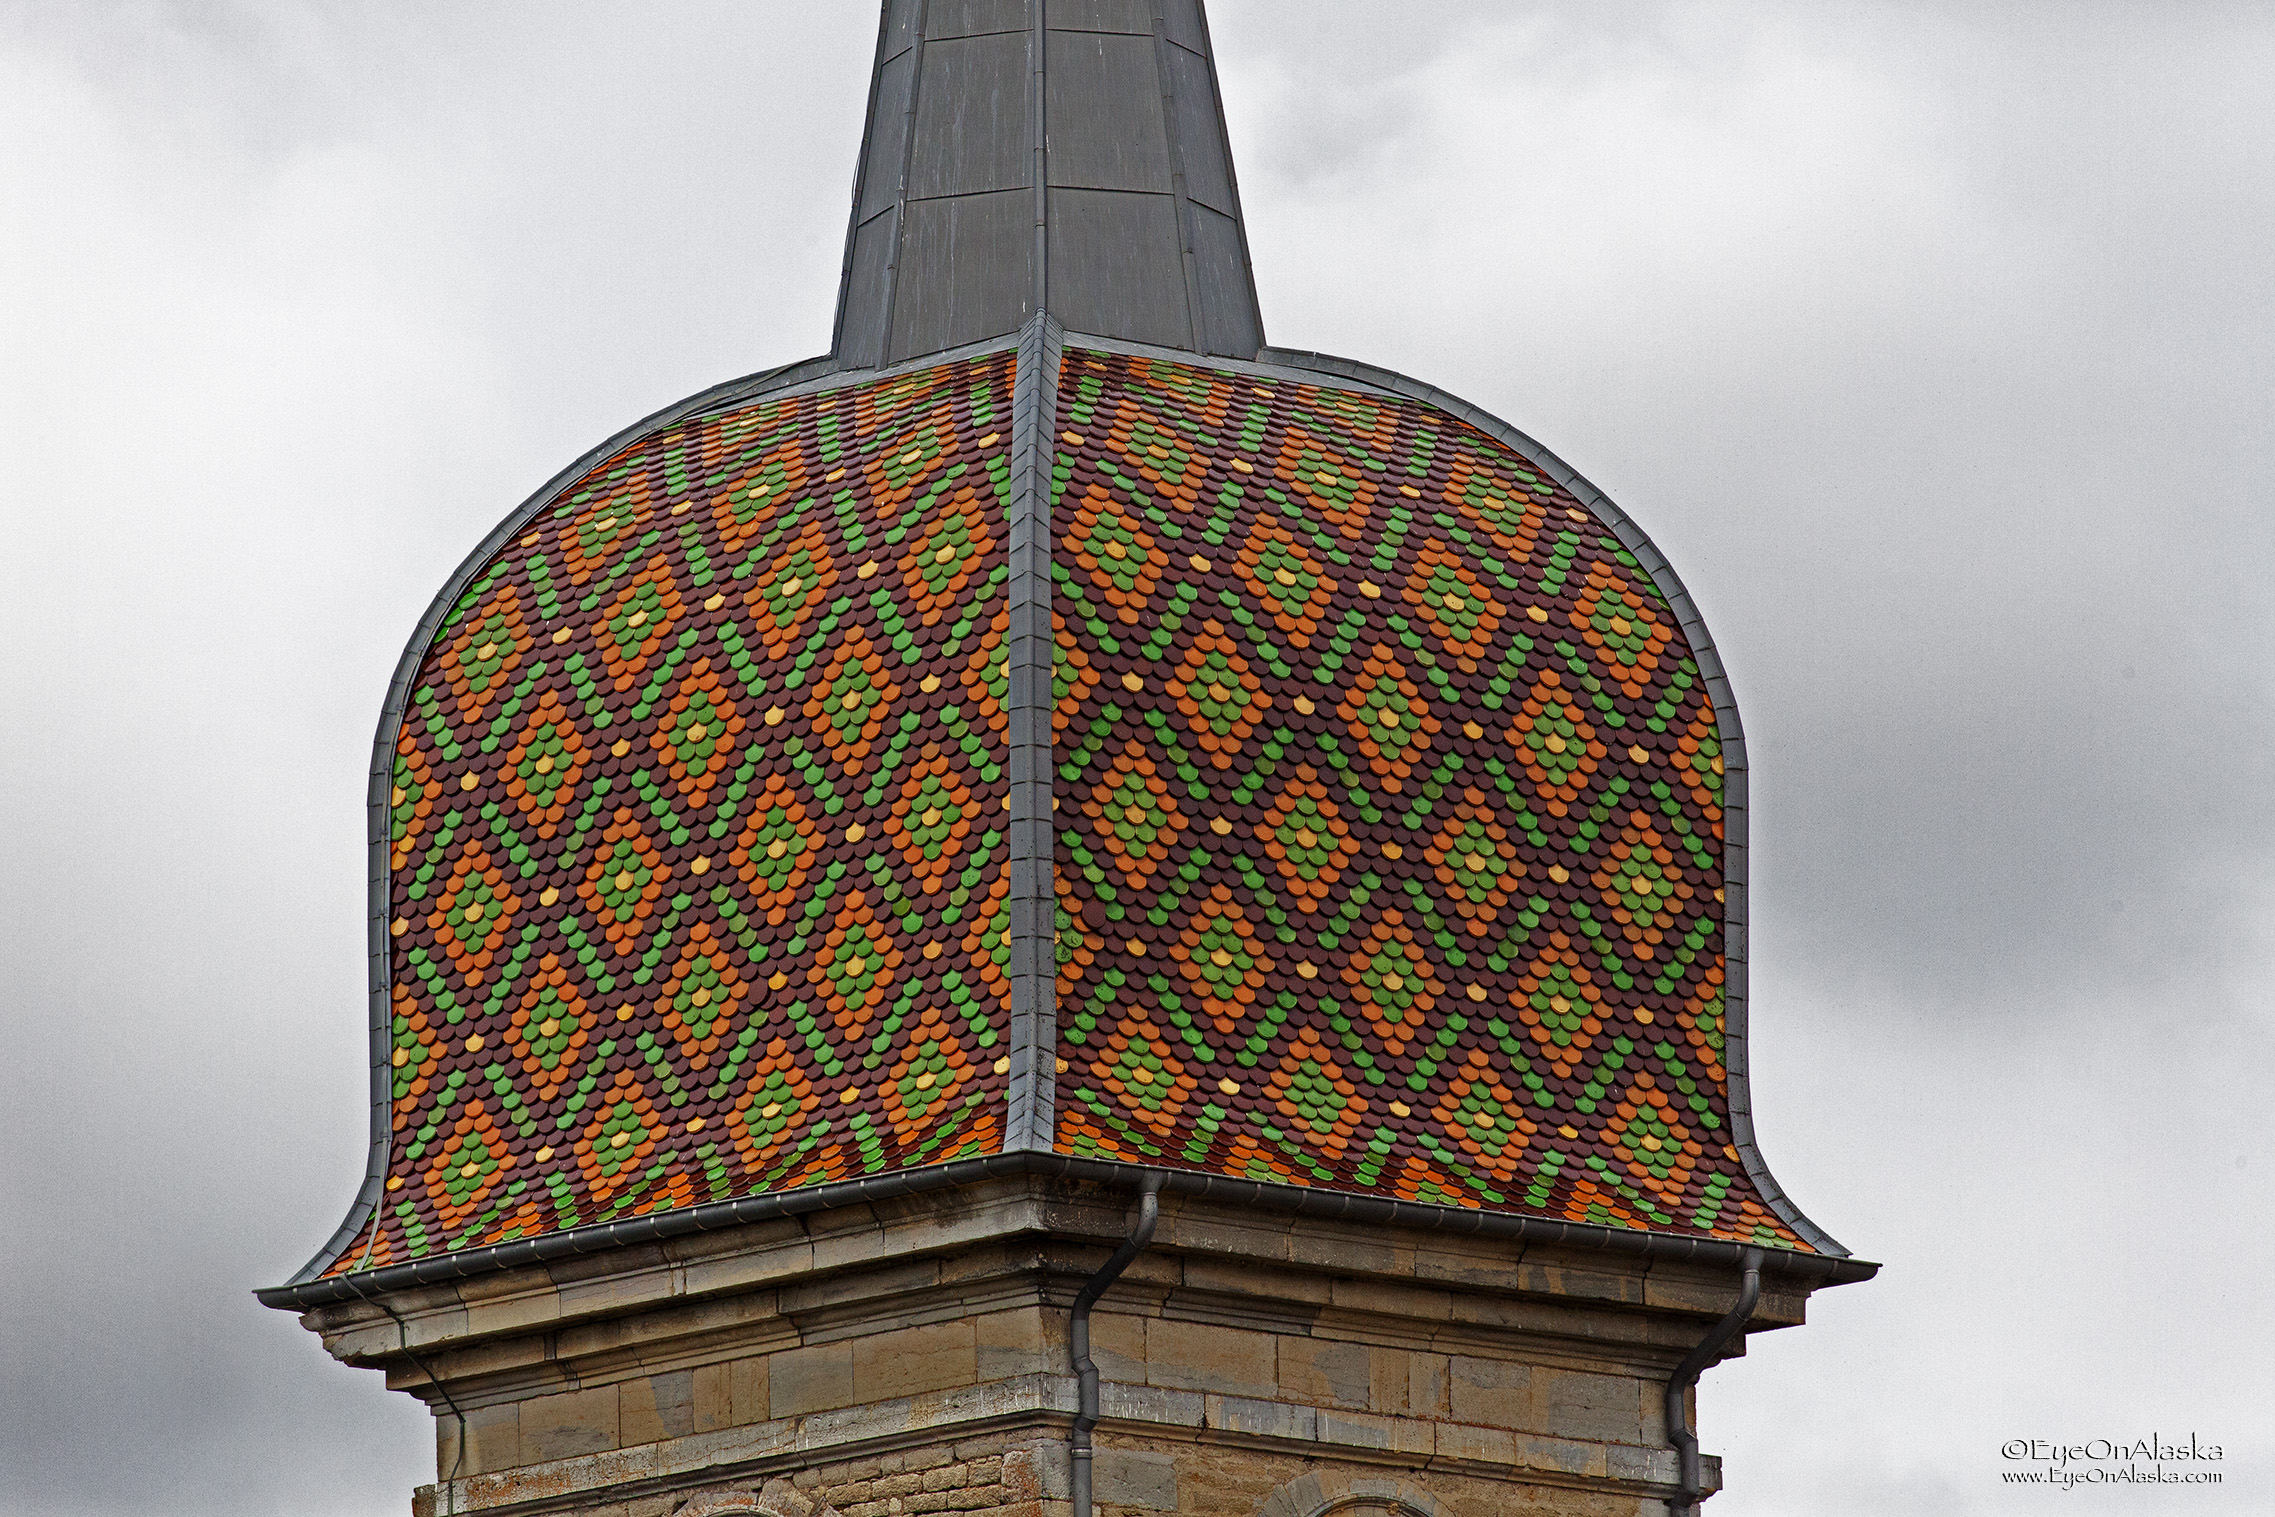 Close up of the varnished tile bell tower dome.